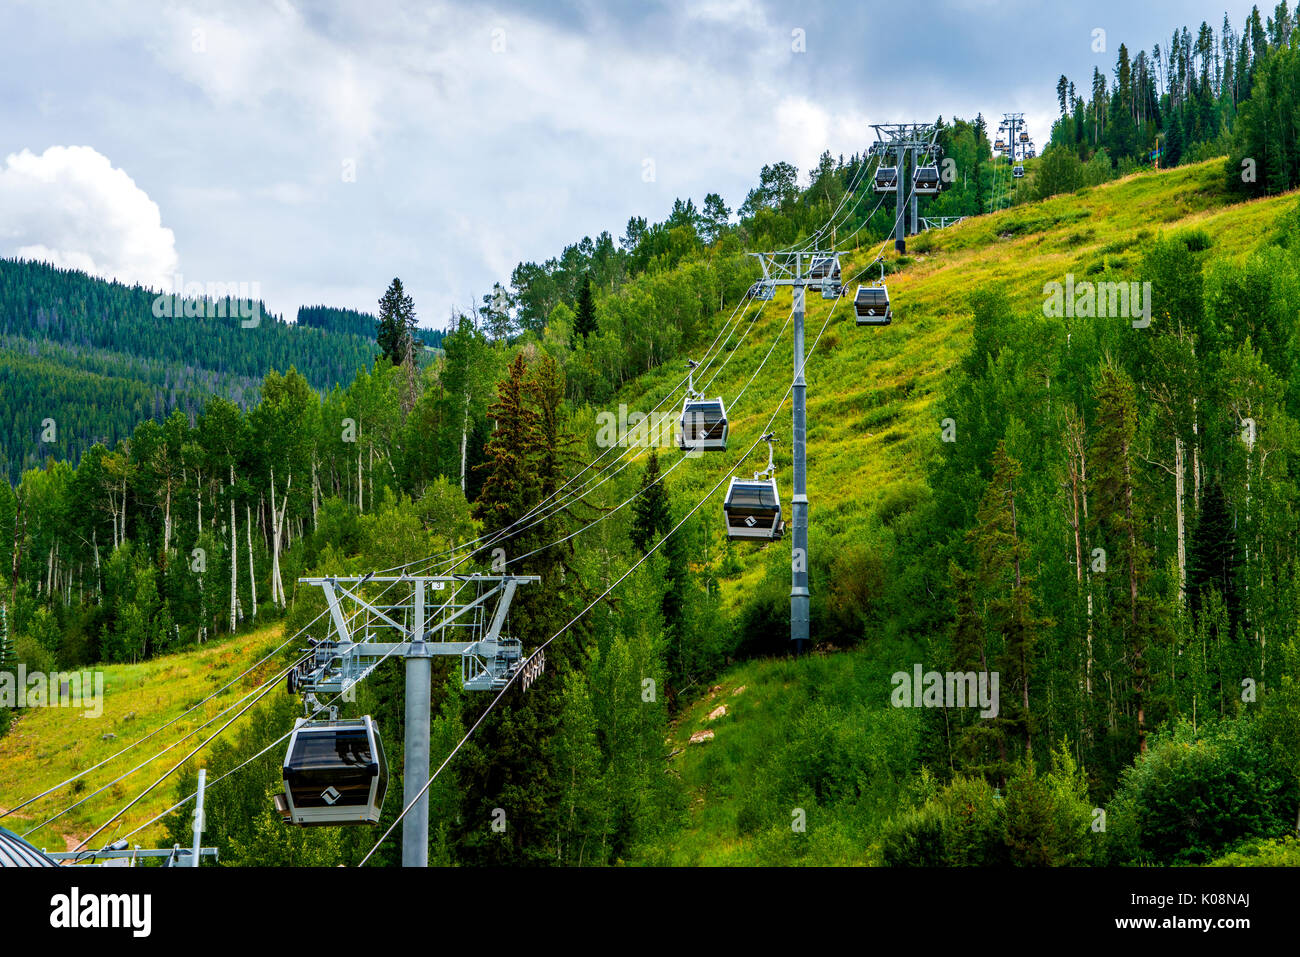 gondola ski lift at the Vail ski resort in Colorado USA - Stock Image